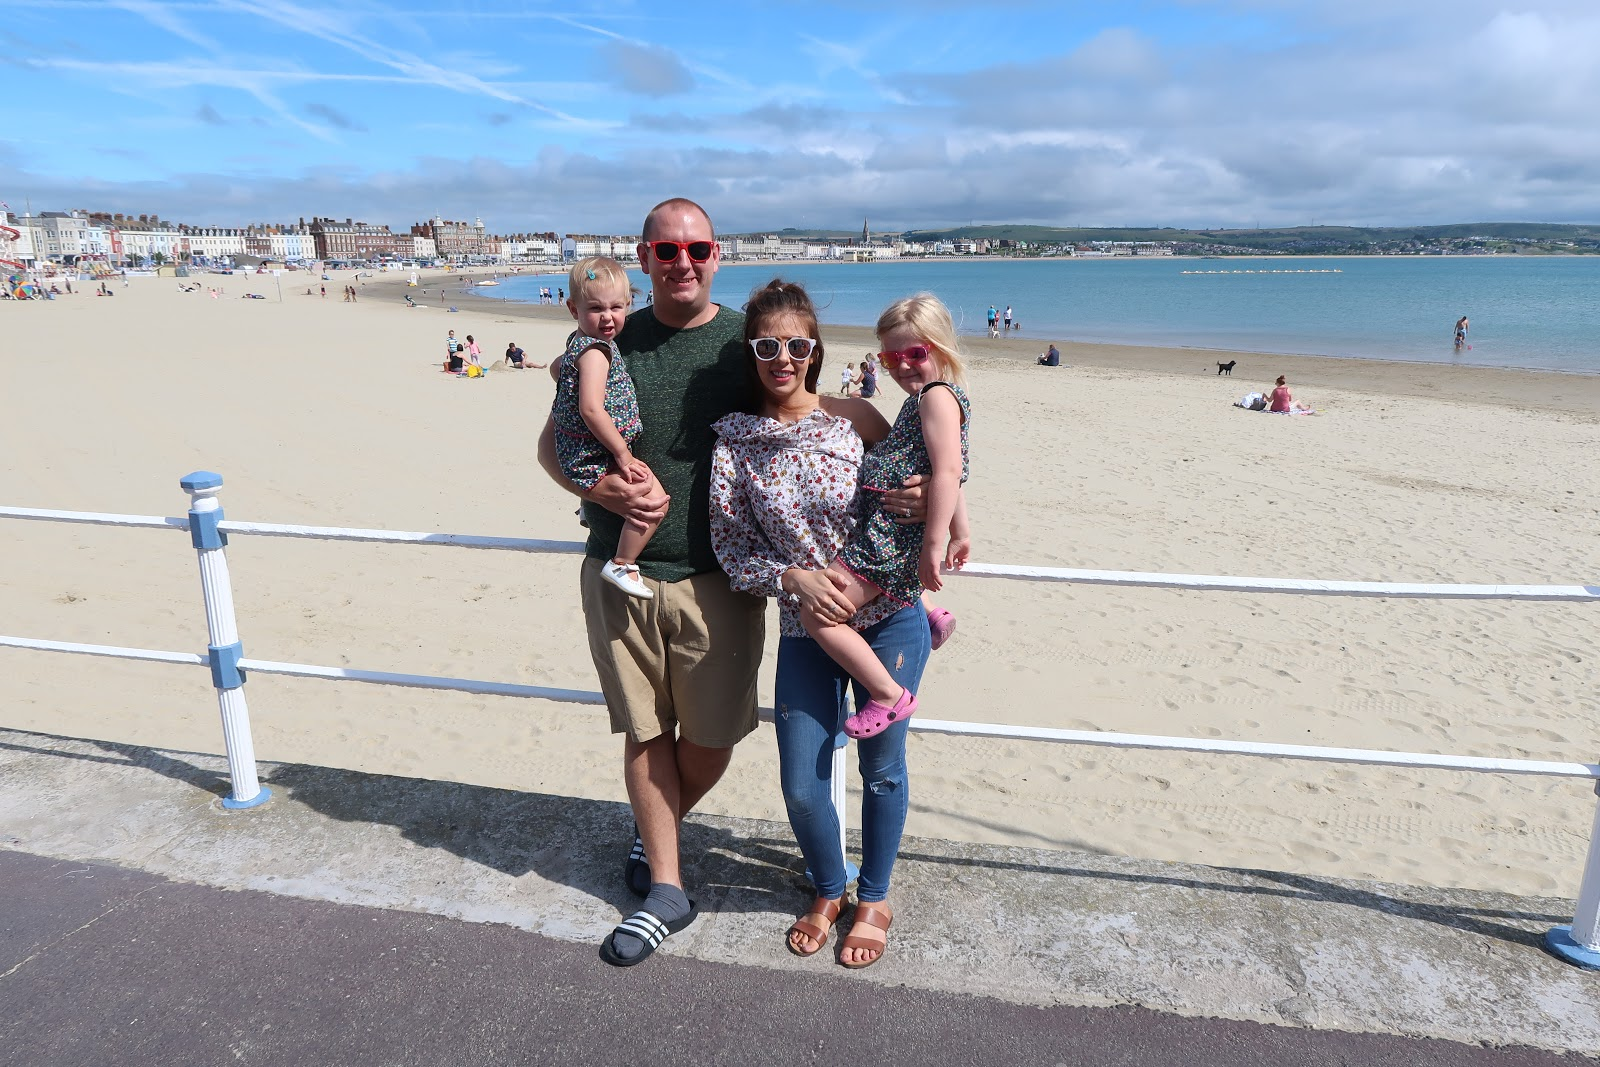 UK staycation in Weymouth